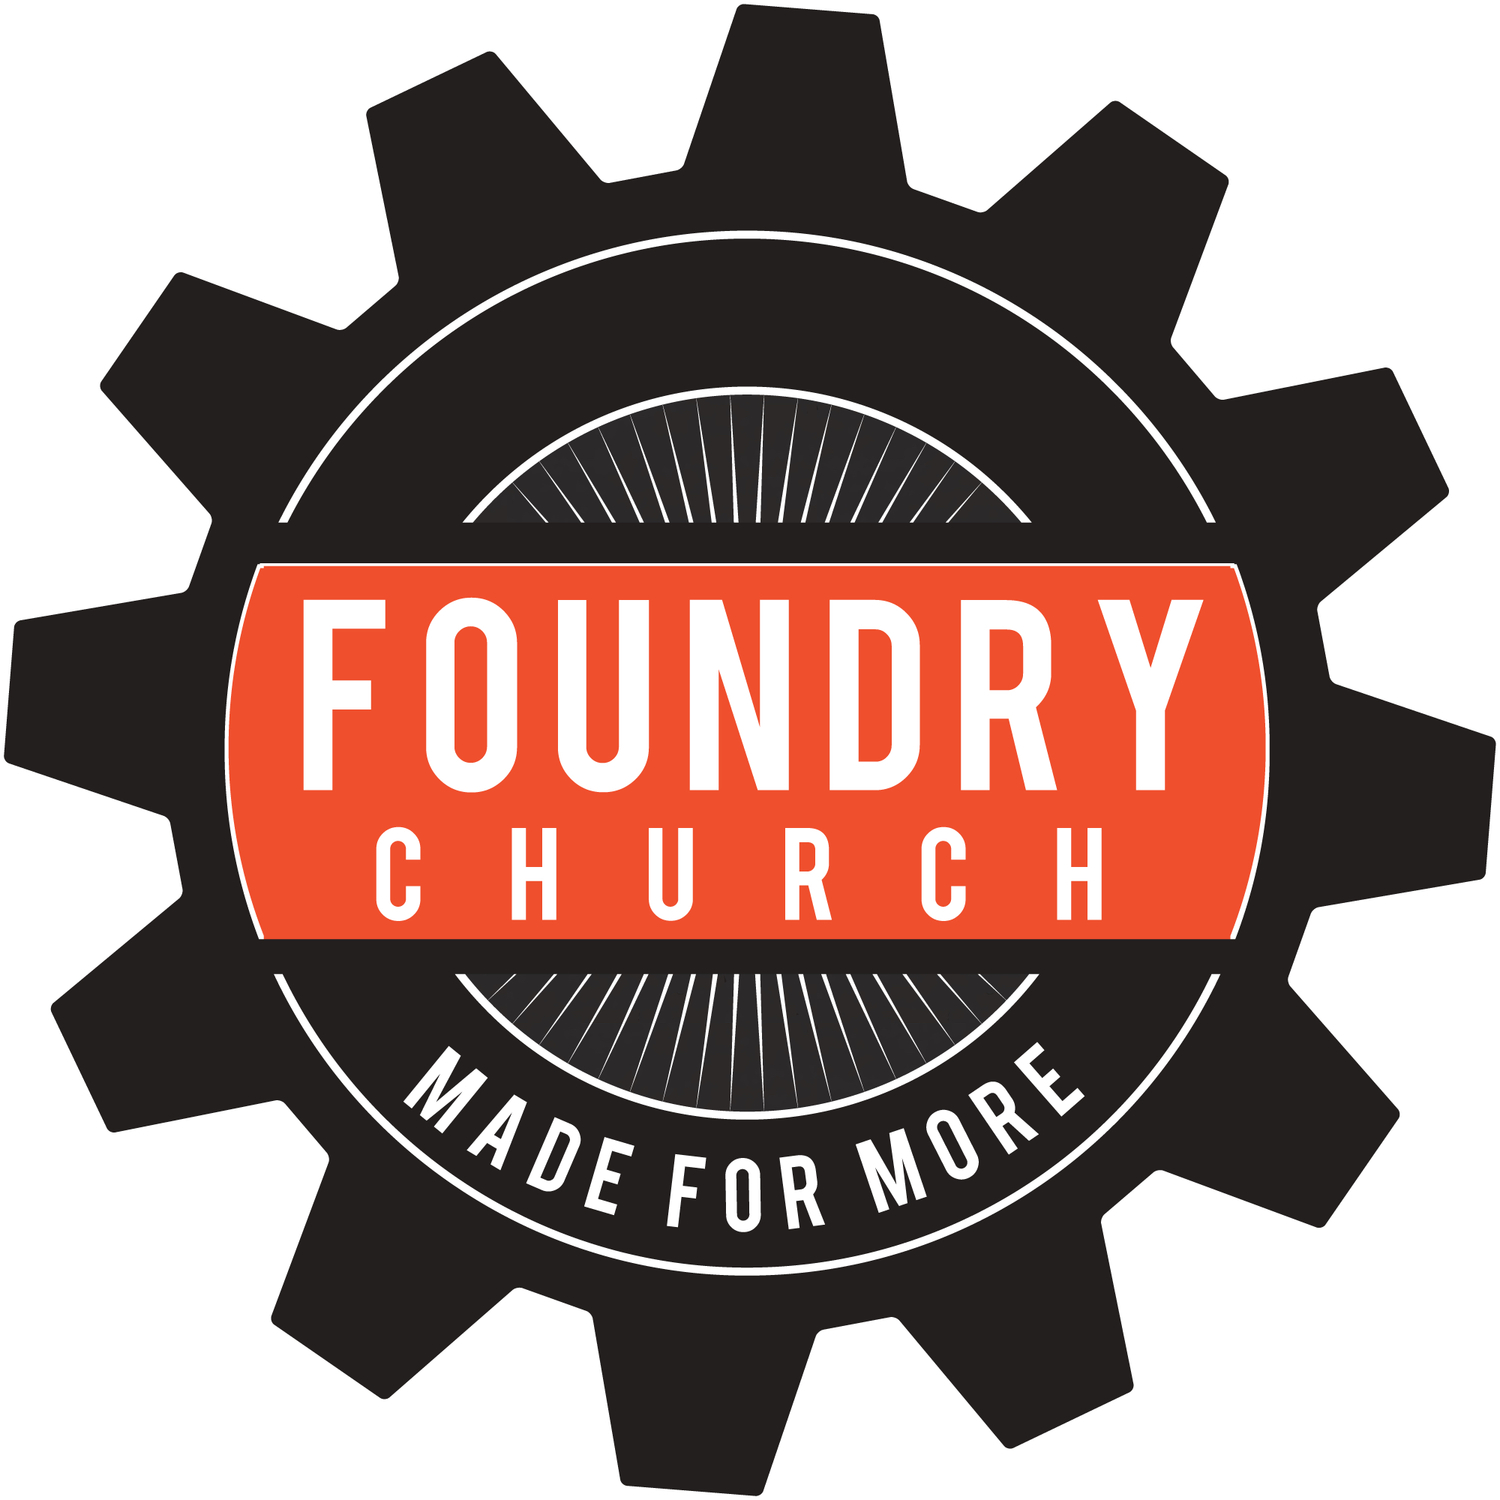 Sermons - Foundry Church